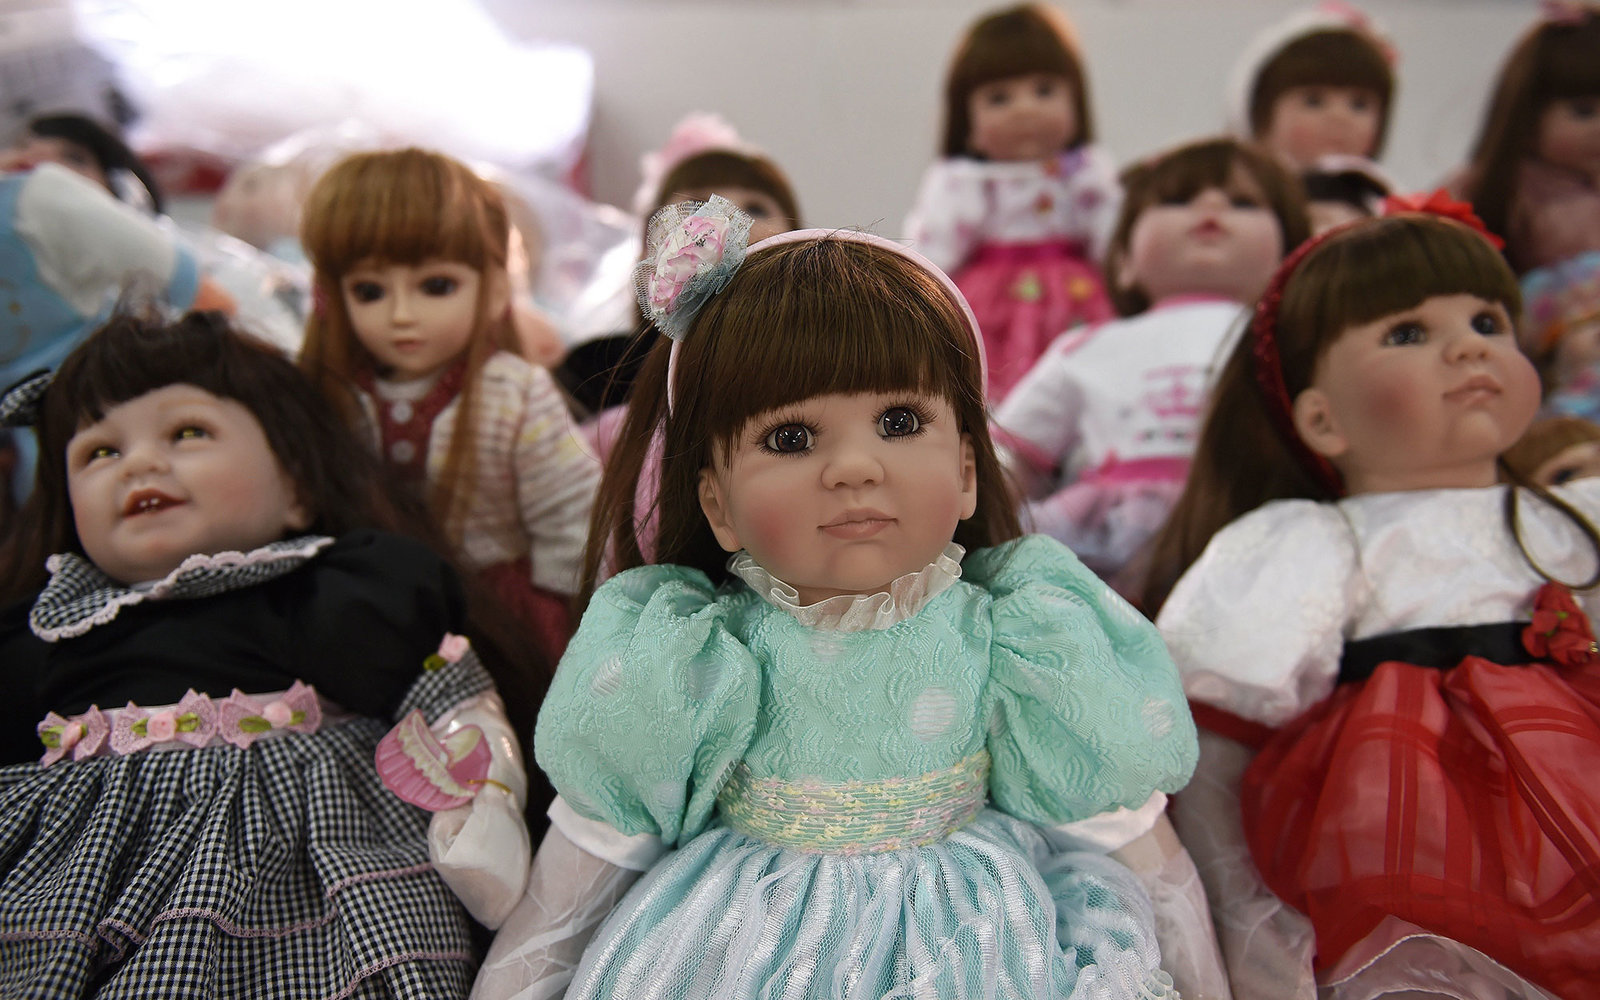 Luuk thep  (child angels) dolls are displayed at the Economic Crime Suppression Division after more than a hundred of them were seized in separate raids, in Bangkok on January 26, 2016. 